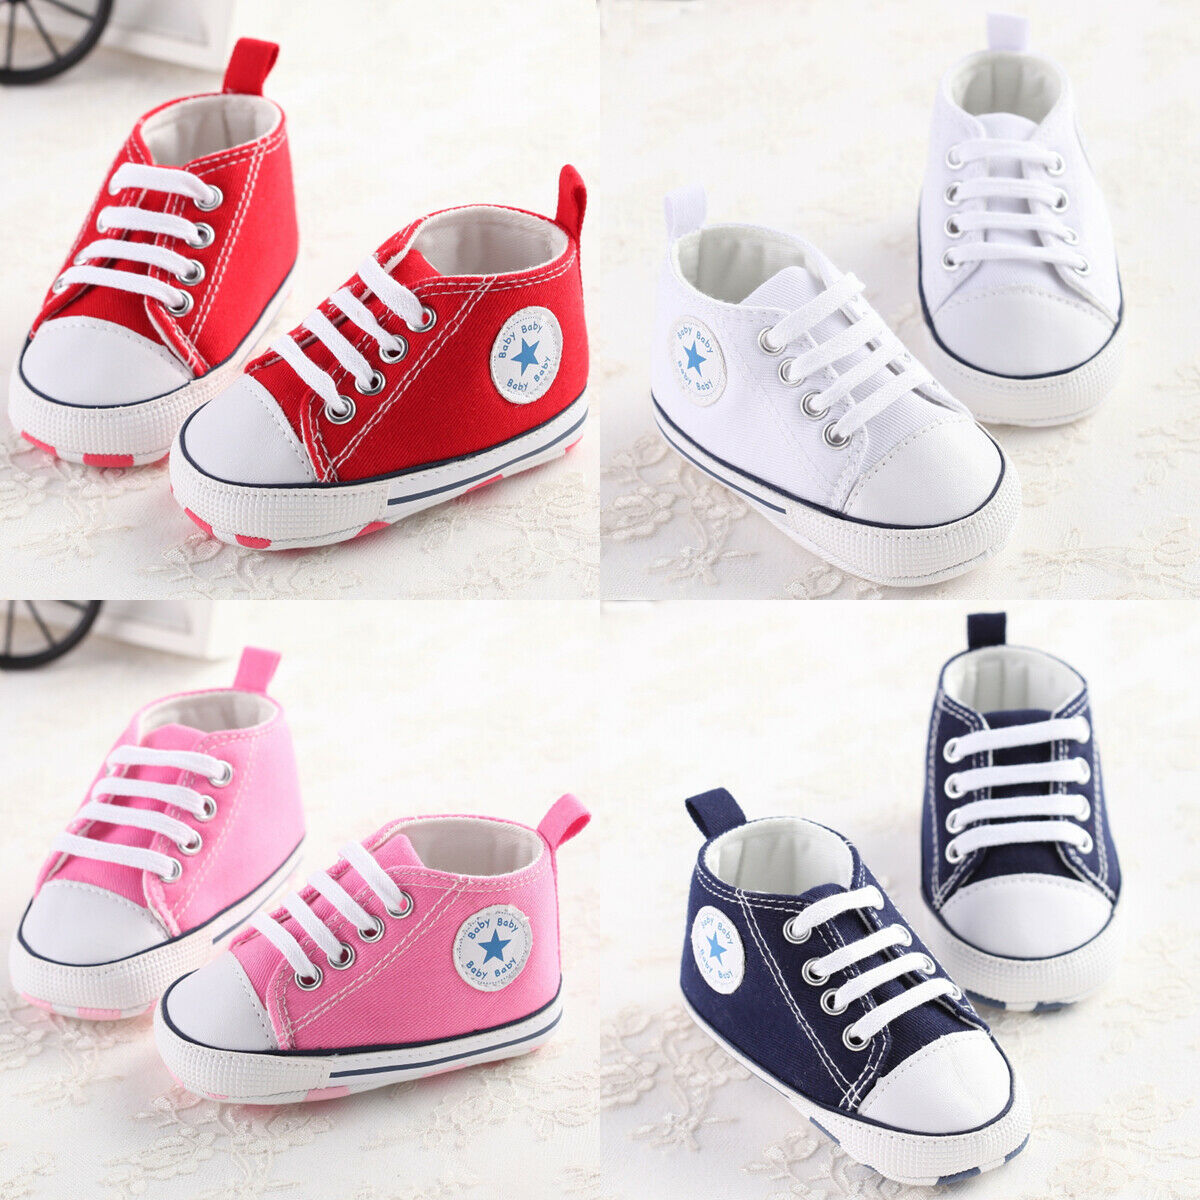 Toddler Baby Shoes Newborn Boys Girls Soft Soled Girl Crib Shoes Prewalker Sneakers